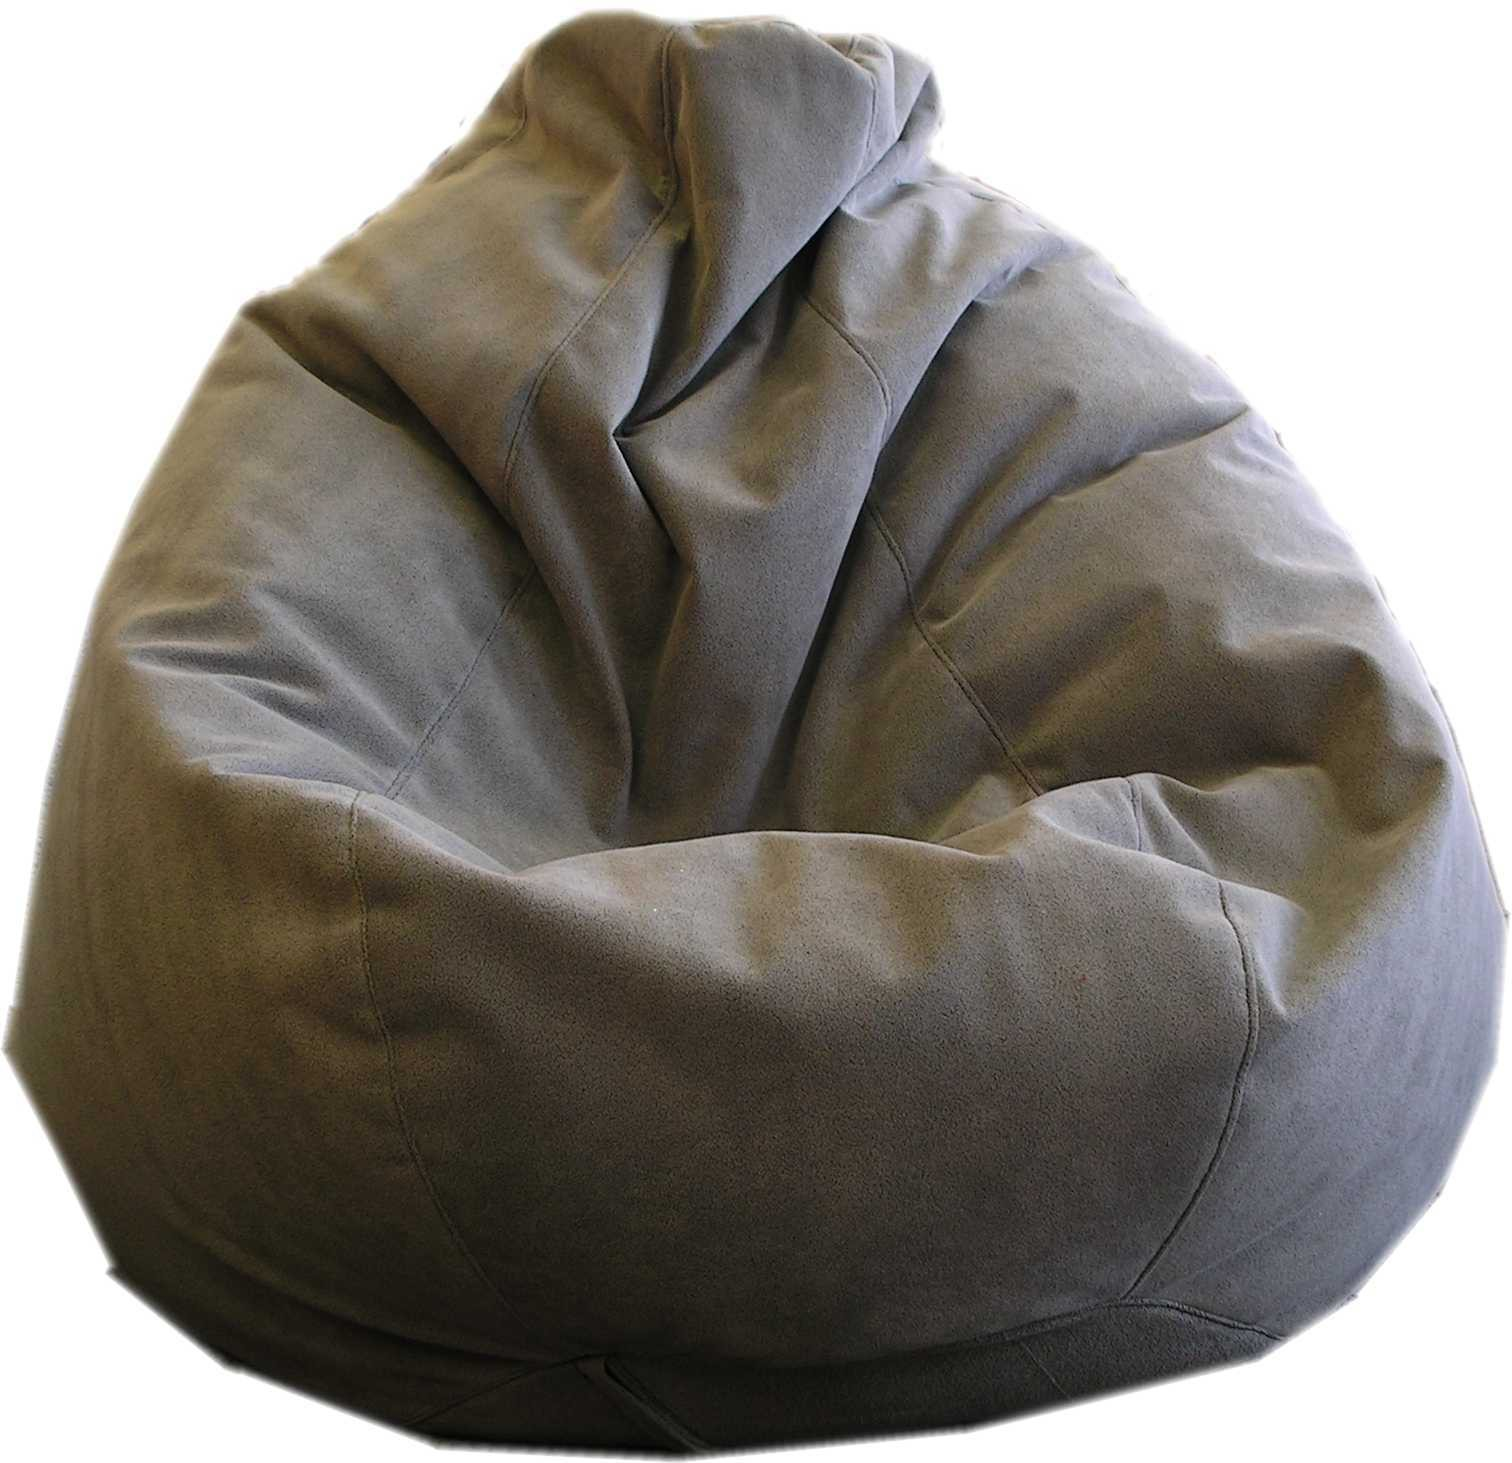 View Bright Sales Corporation XXL Bean Bag Cover(Multicolor) Furniture (Bright Sales Corporation)